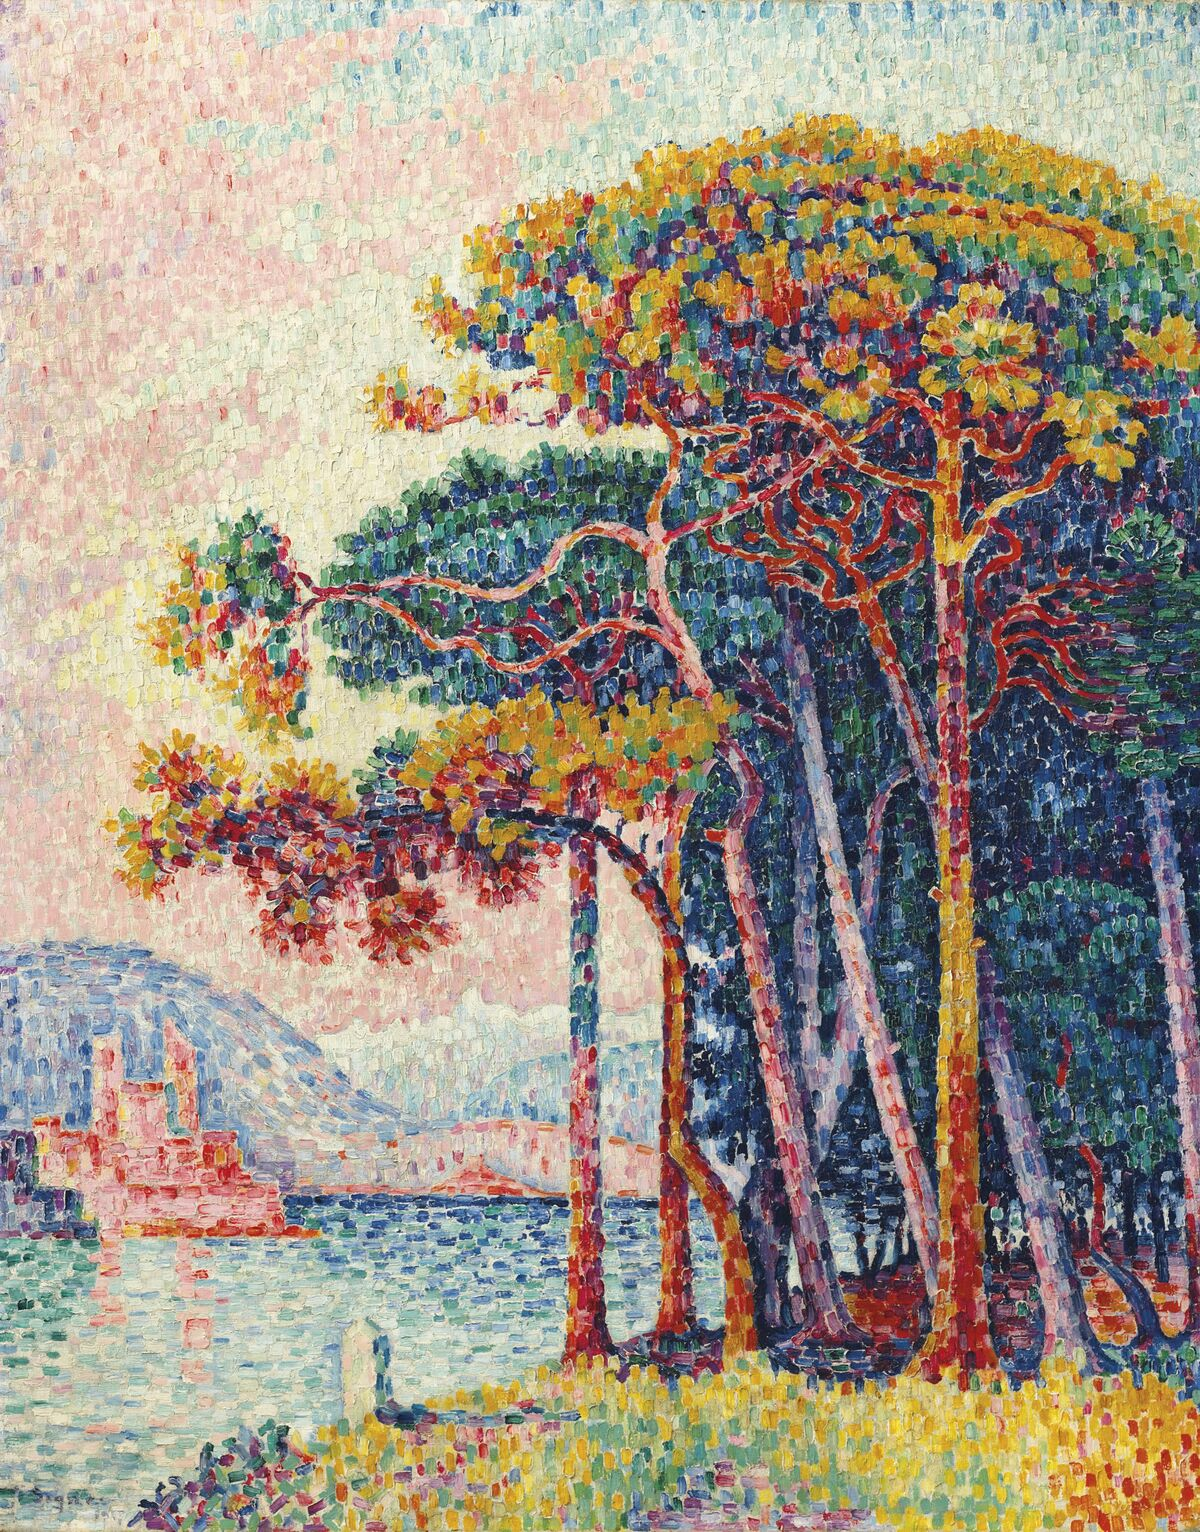 Paul Signac, Antibes (la pinède), 1917. From the Collection of Peggy and David Rockefeller. Courtesy of Christie's.